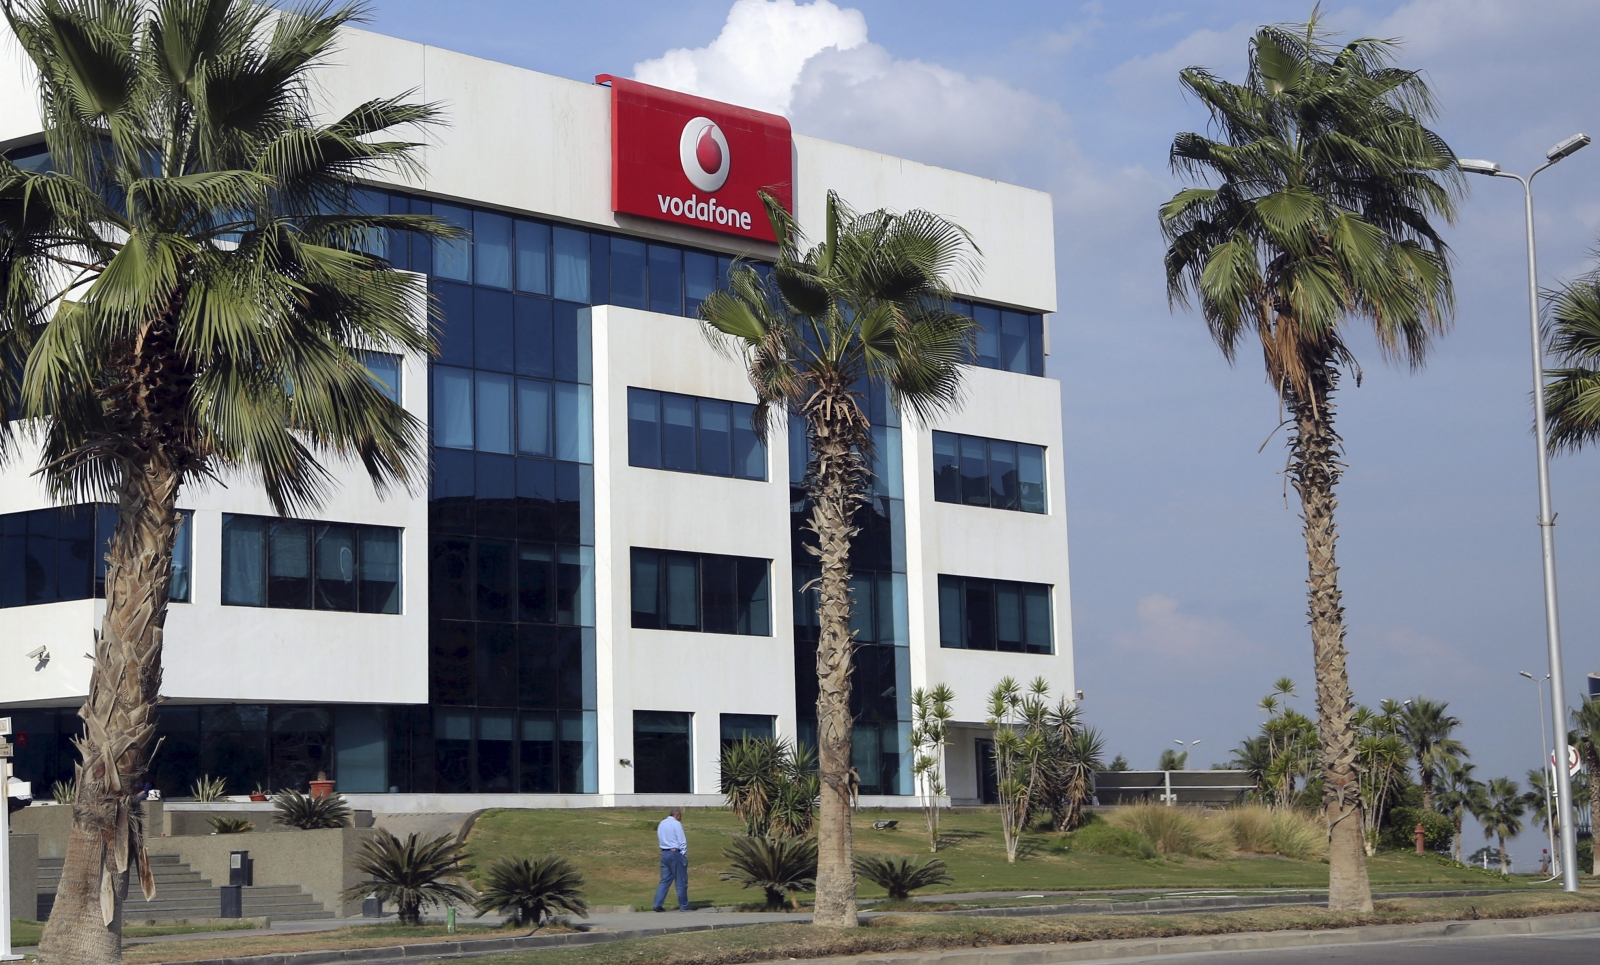 China Telecom and Saudi Telecom said to have expressed interest in acquiring 4G mobile-phone licenses in Egypt